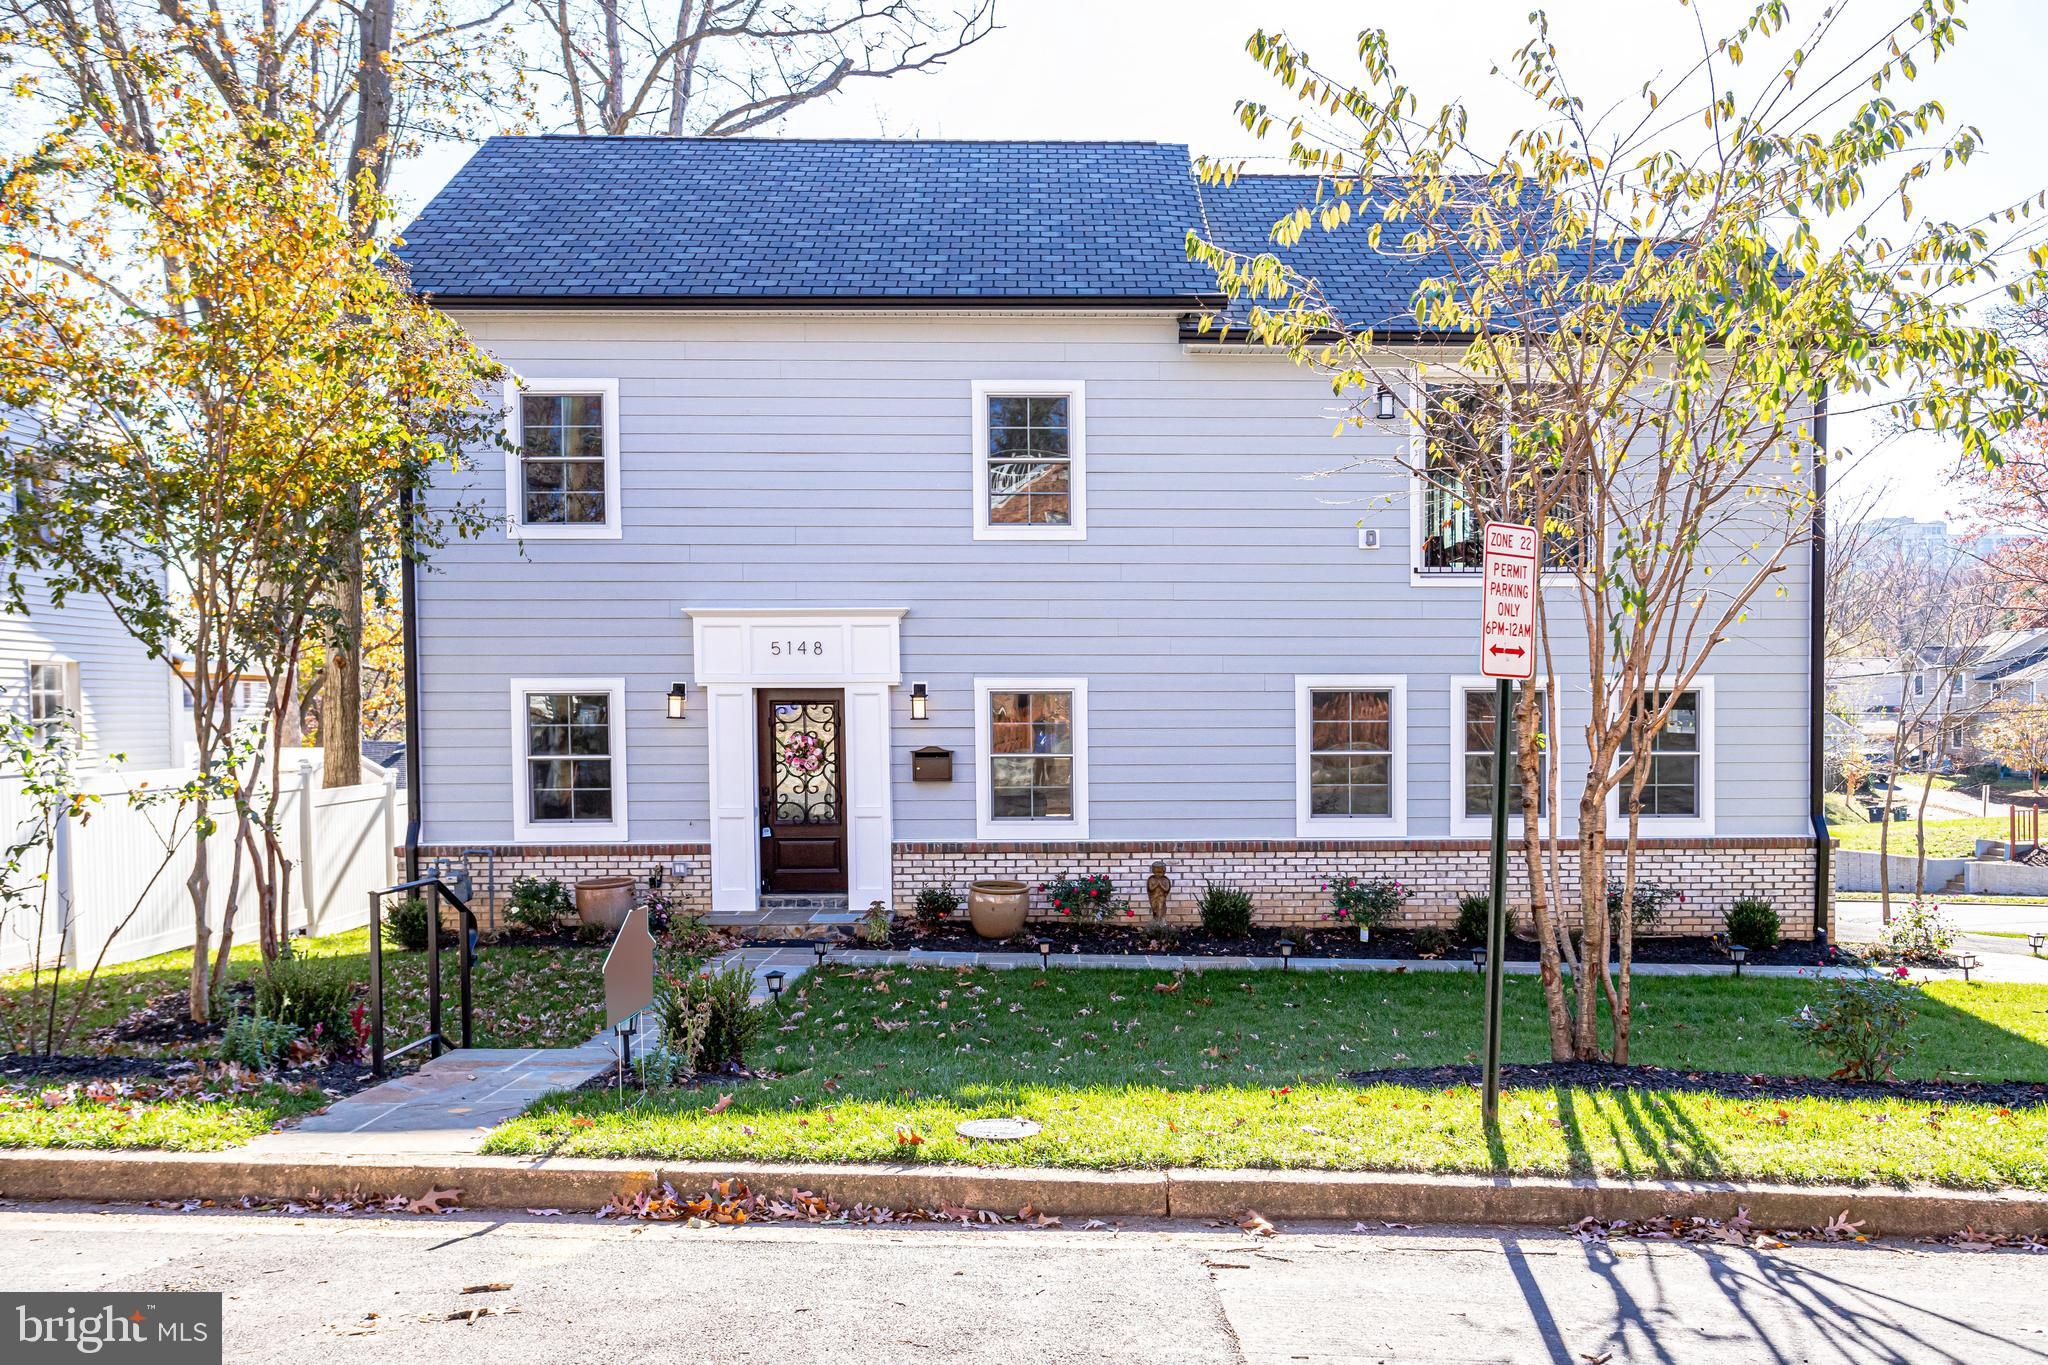 5148 11th St S, Arlington, VA, 22204